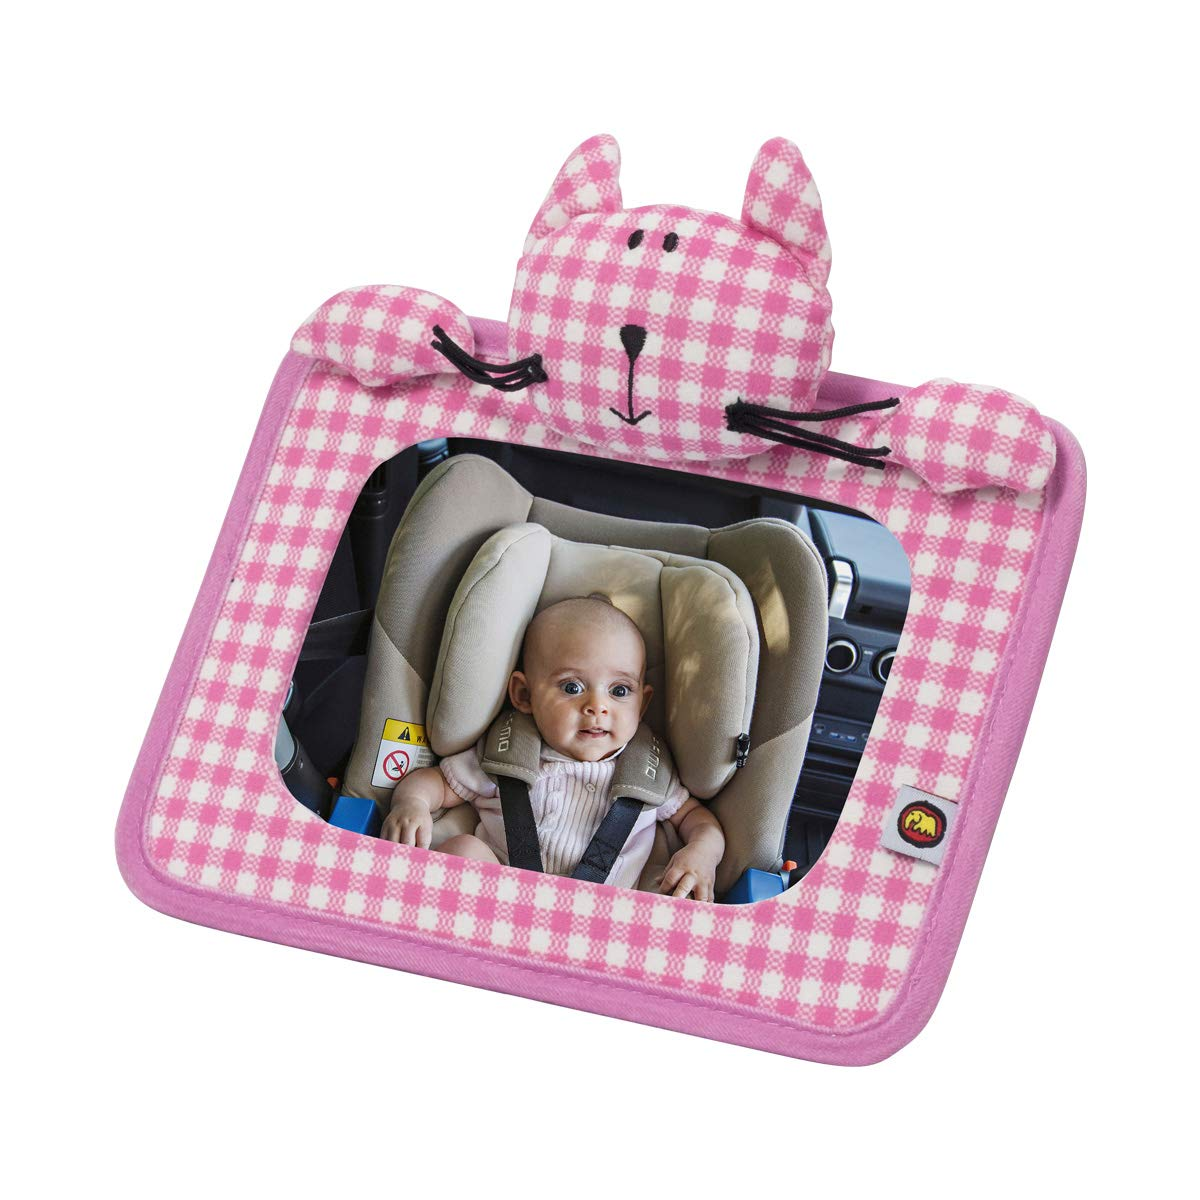 INFANZIA Baby Back Seat Mirror - Car Seat Mirror for Rear Facing Infants Baby in-Sight Car Mirror Wide Convex Glass and Fully Assembled Lovely Animals Pattern